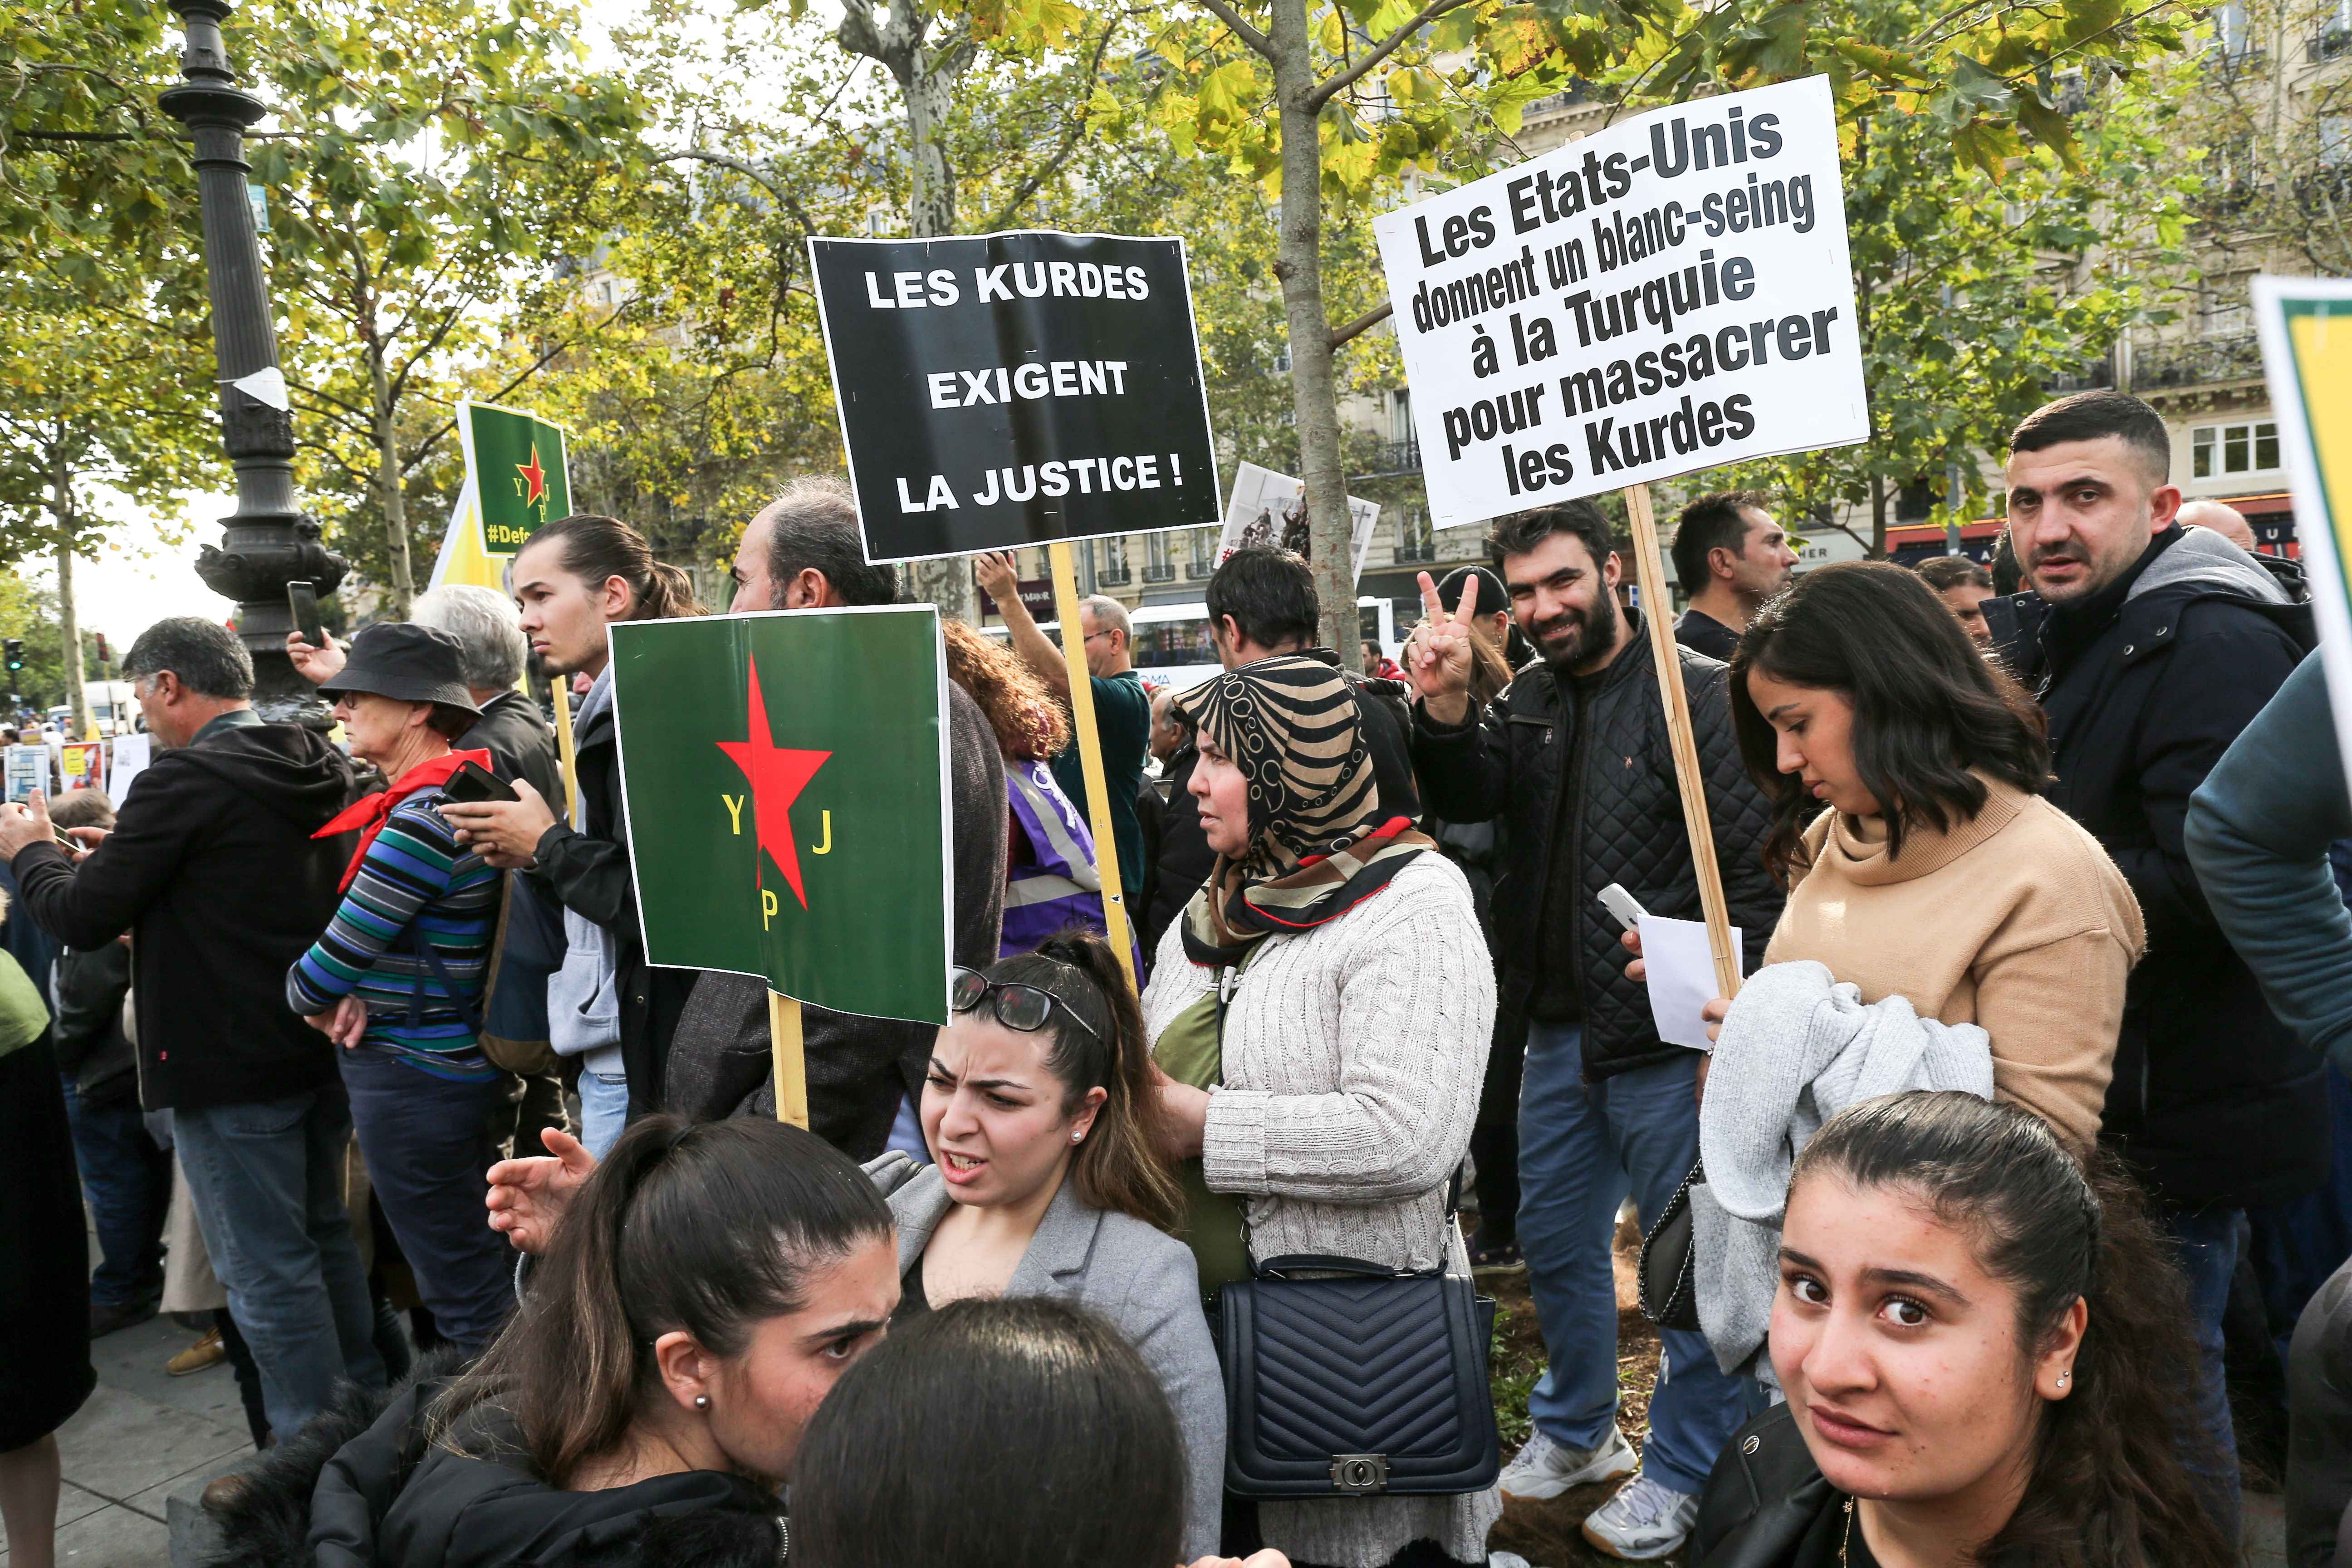 People gathered at the place de la Republique in Paris, on October 12, 2019, in support of the Kurds and against the Turkish offensive in Syria. On October 9, 2019, the Turkish military began its assault against Kurdish-held territory in northern Syria , p